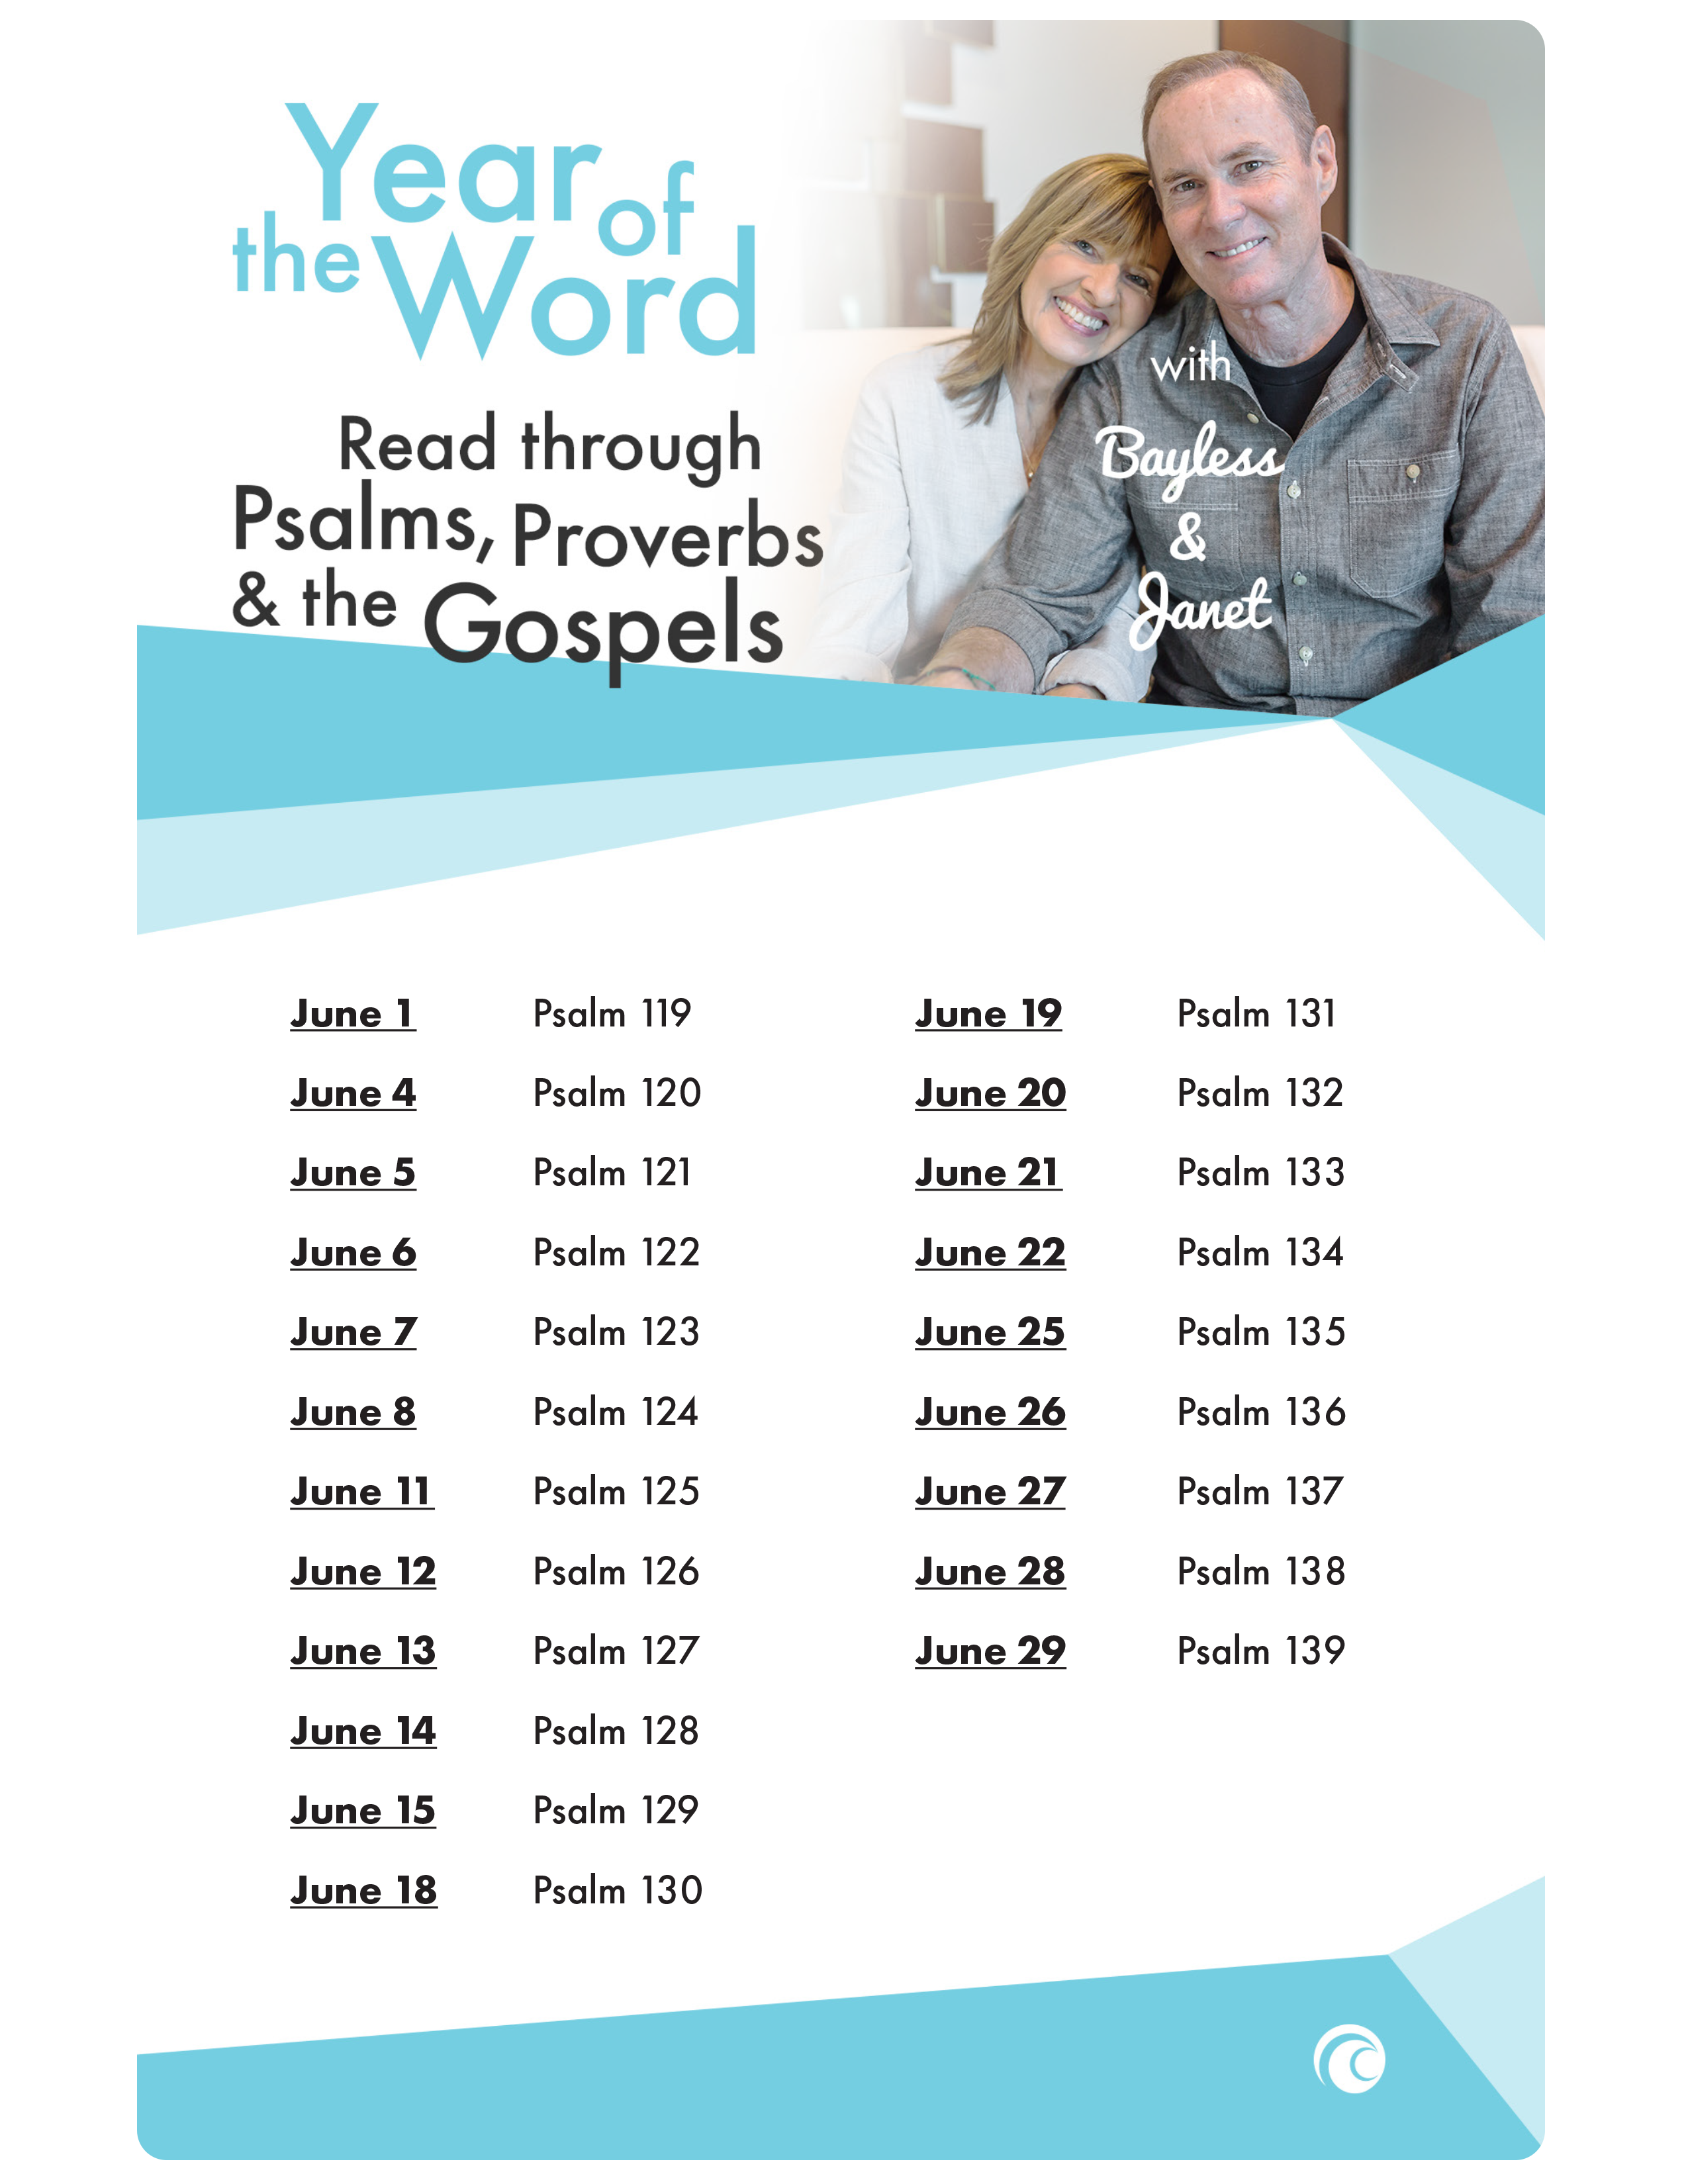 YOTW Psalms Proverbs Gospels June 2018